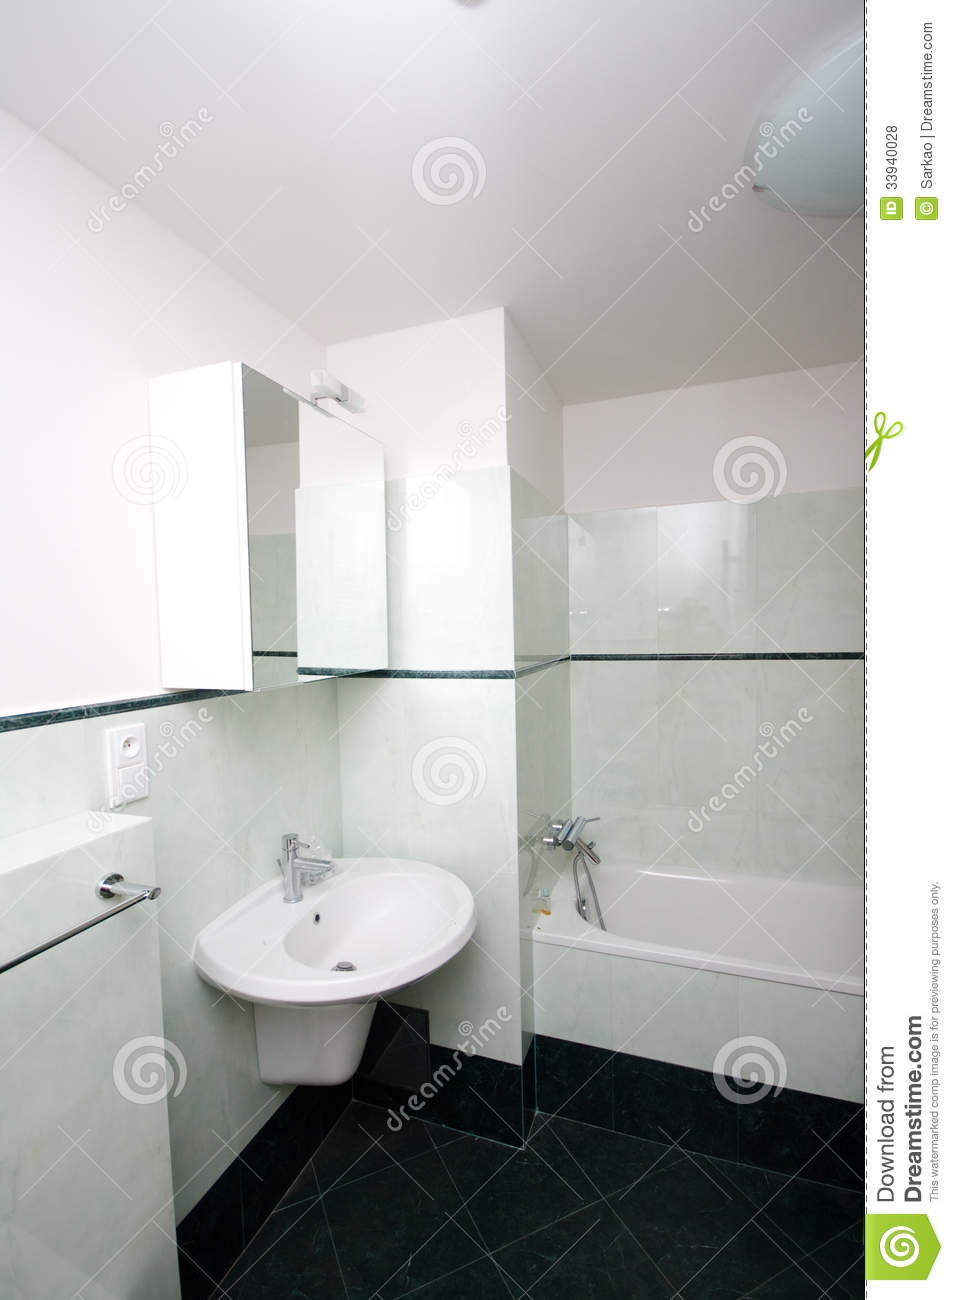 Simple modern bathroom royalty free stock photos image for Modern simple bathrooms